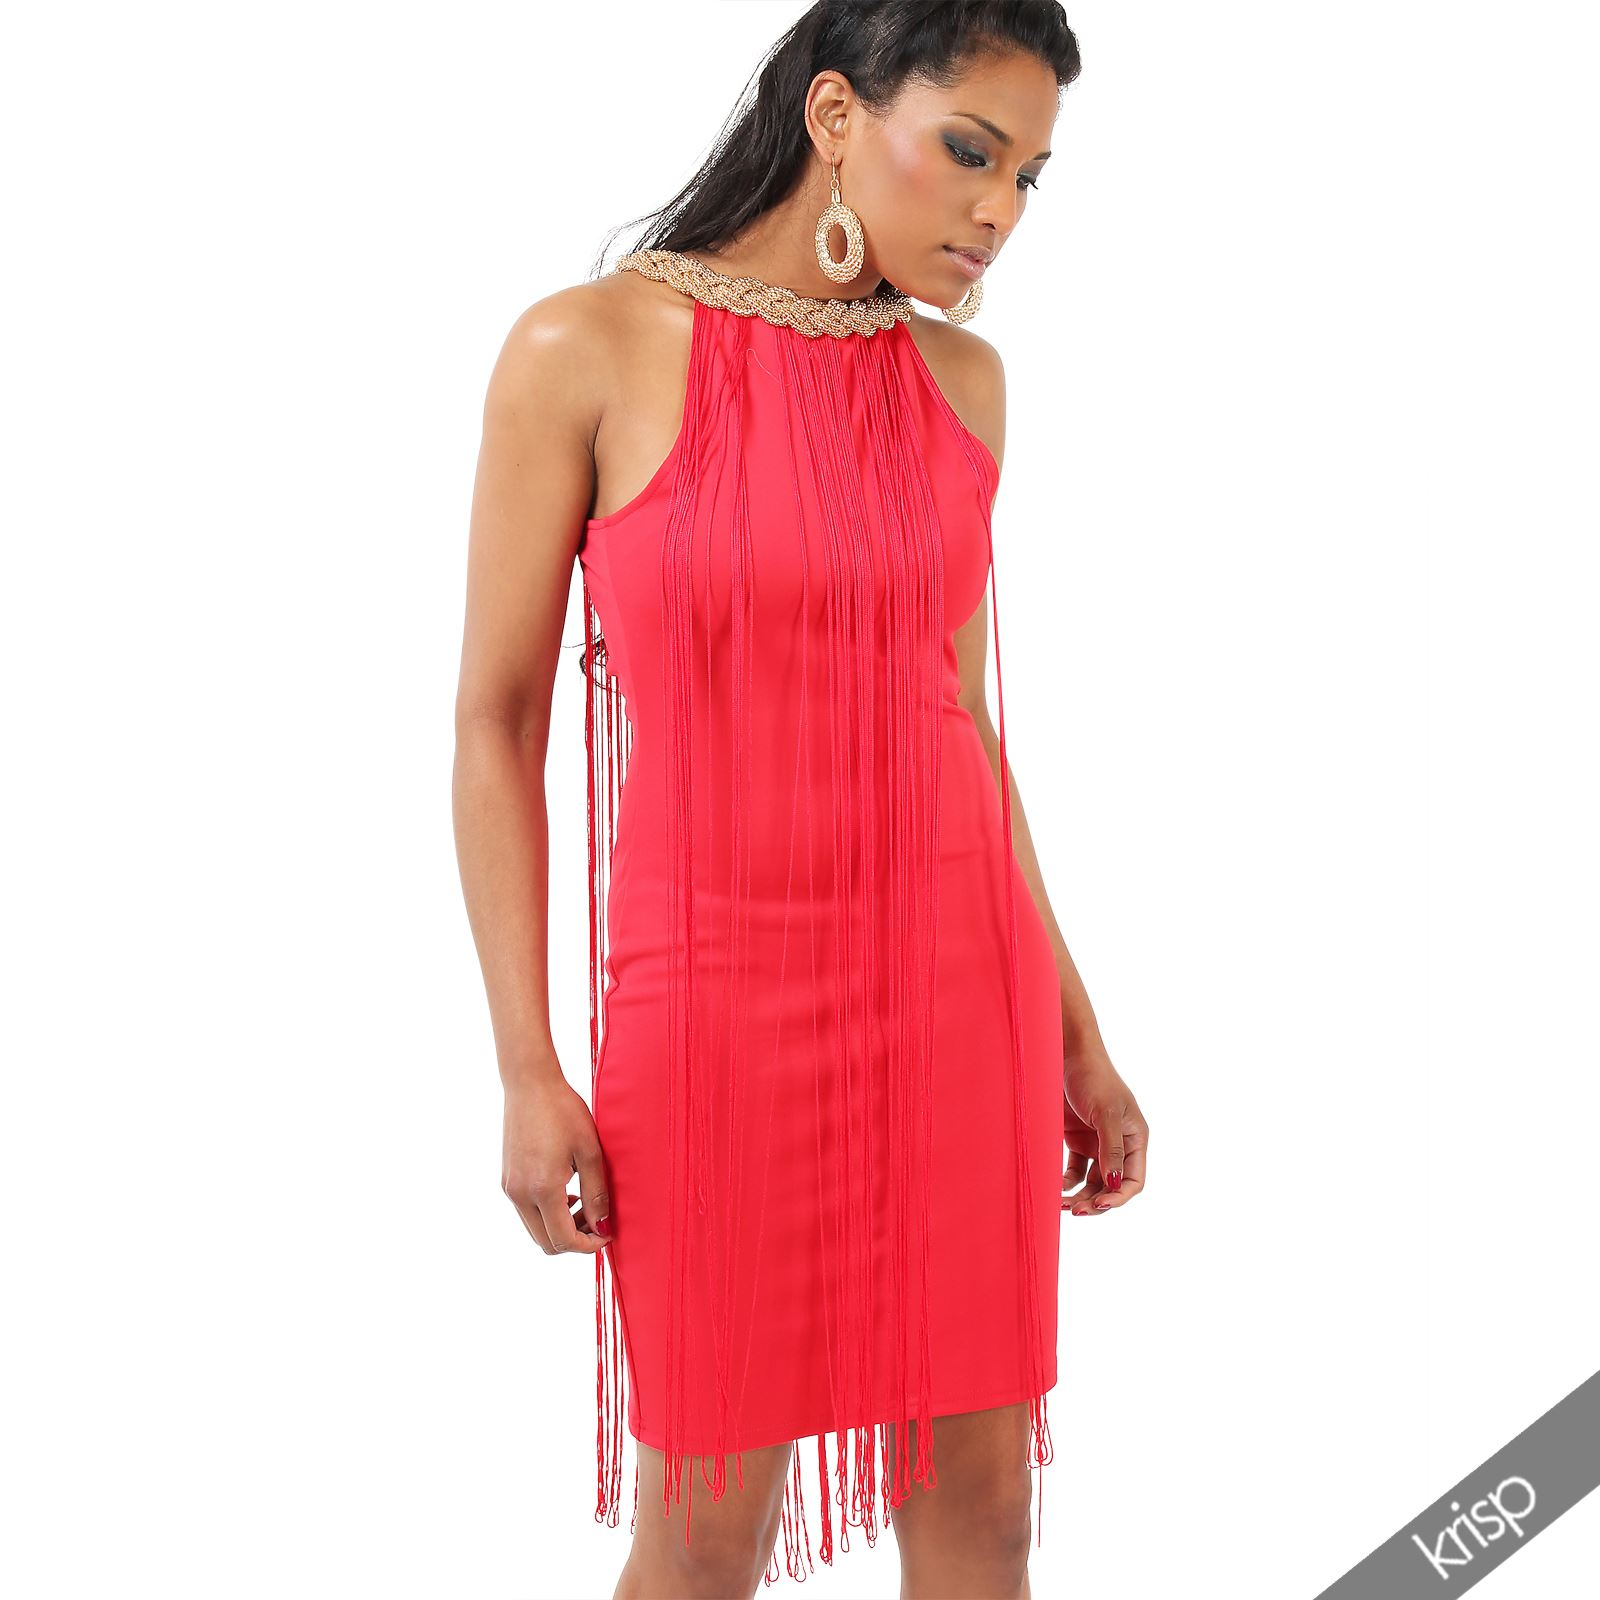 Cheap dress next day delivery2go